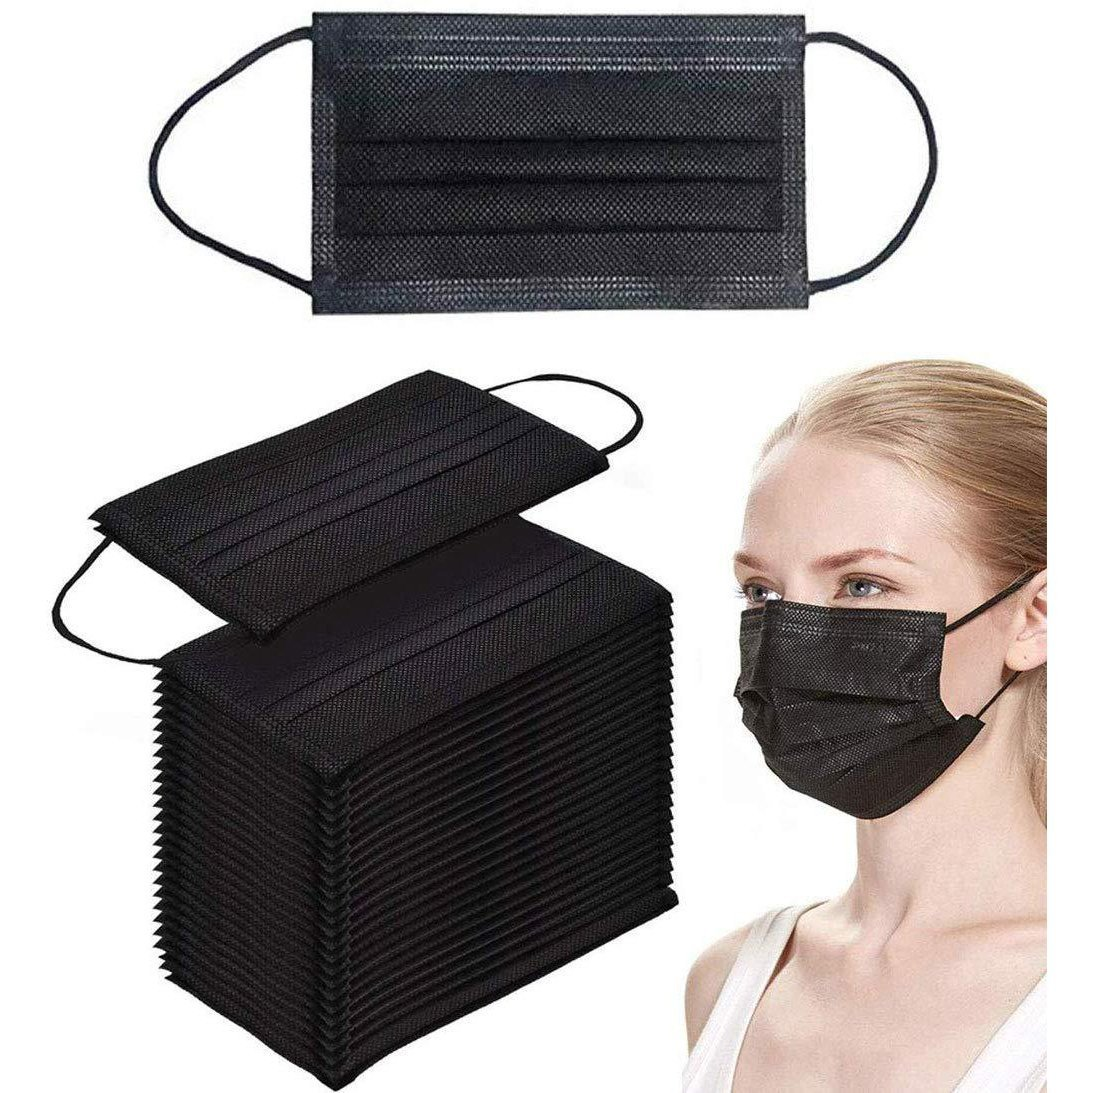 Disposable Face Masks 50 Pack Breathable Dust Filter Masks Black Mouth Cover Masks with Elastic Ear Loop